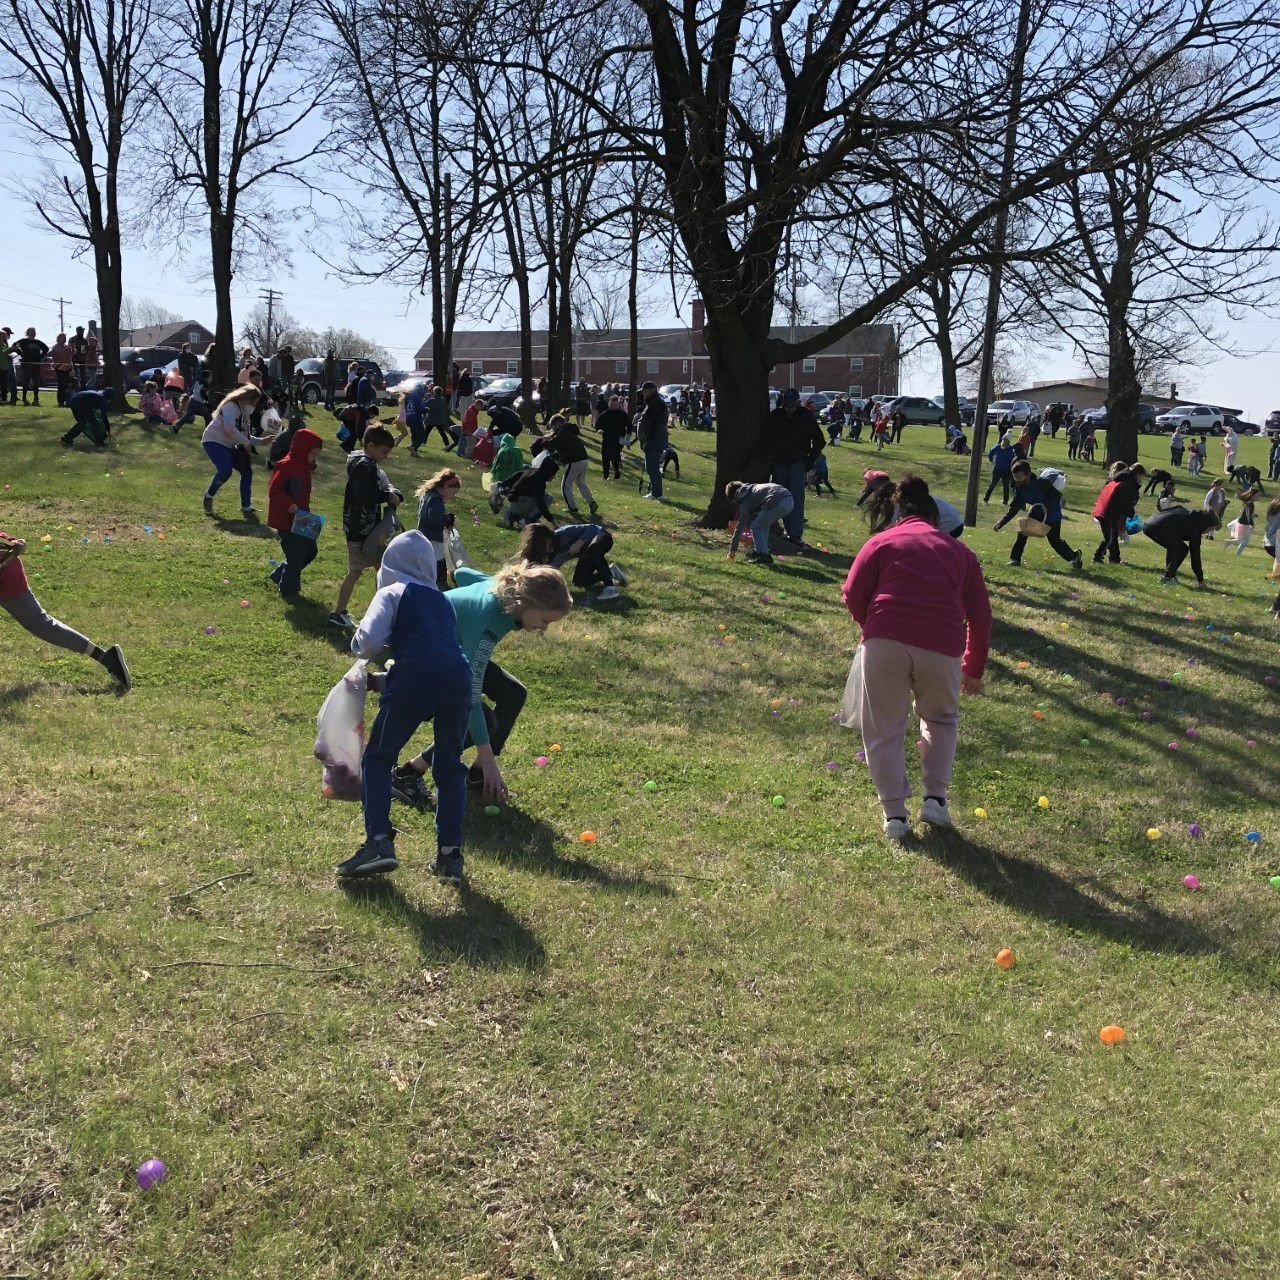 Children happy to find candy and cash at Easter egg hunt